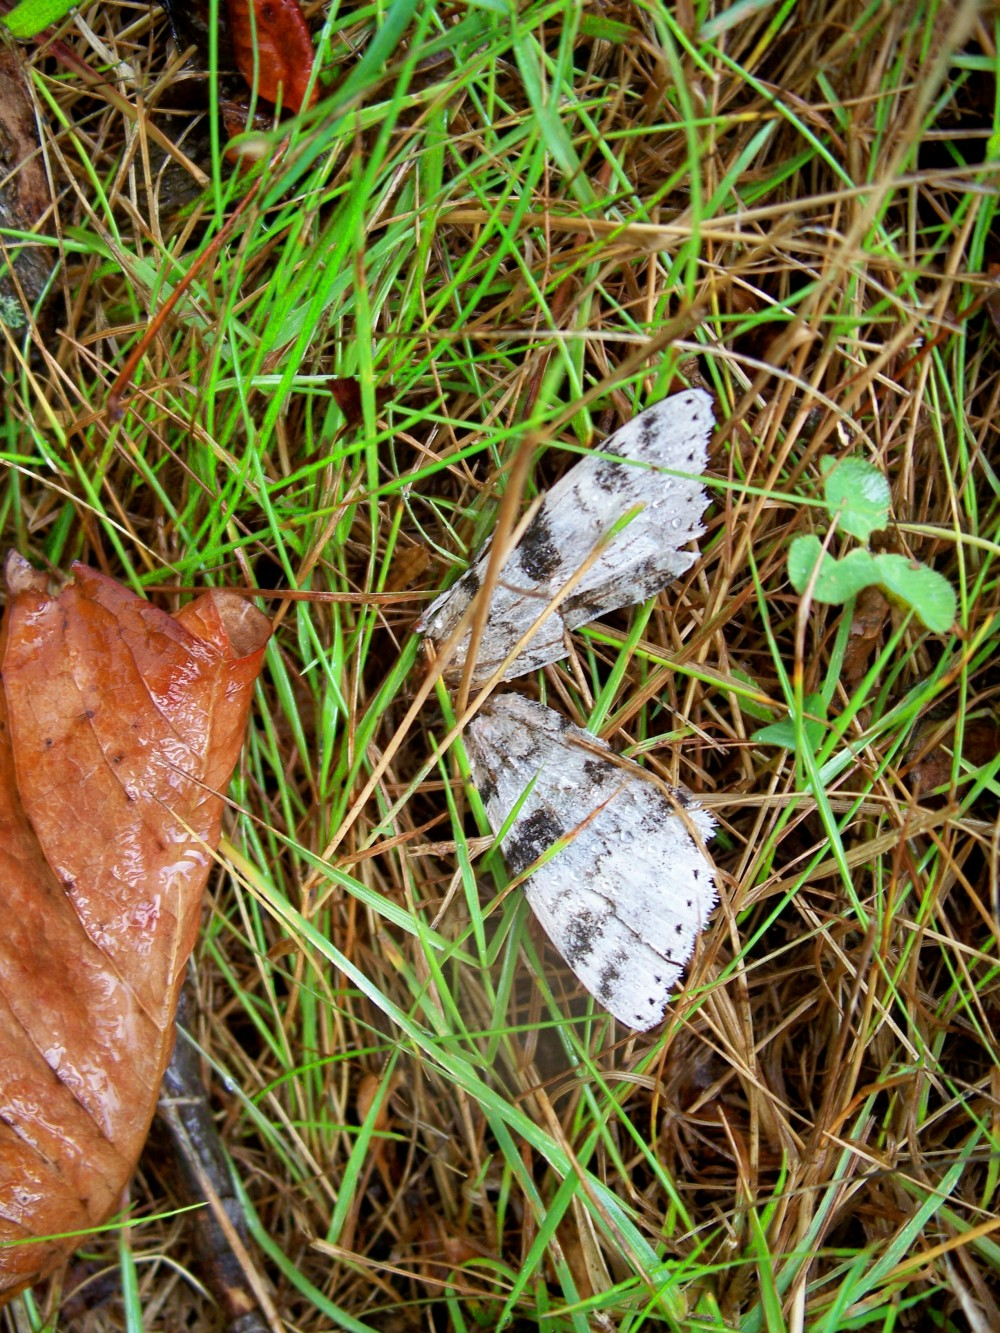 dead moth or butterfly, 13 Sept 2010